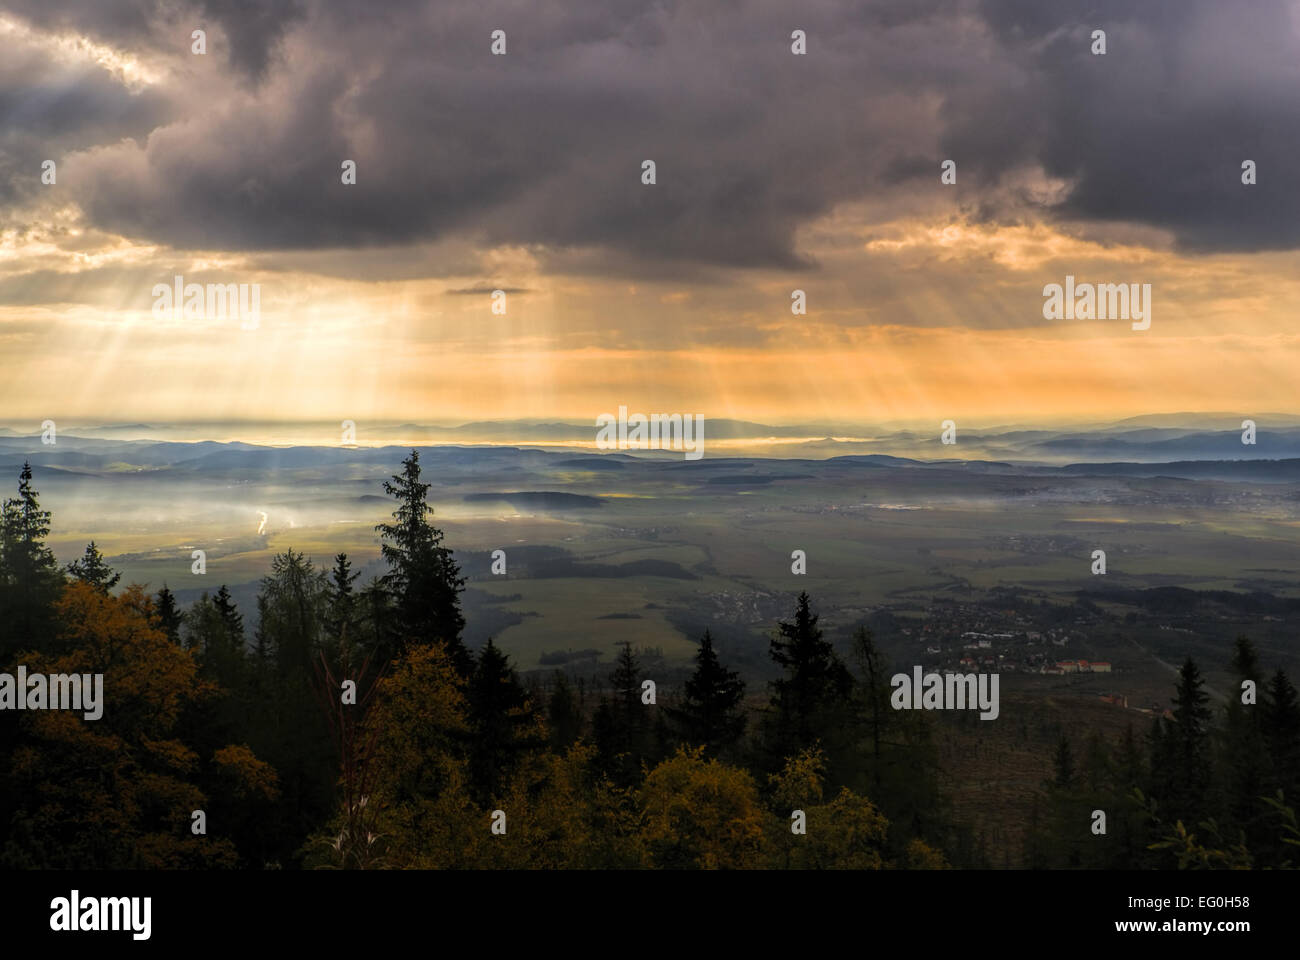 Godly light rays passing through clouds in the early morning above hilly countryside - Stock Image